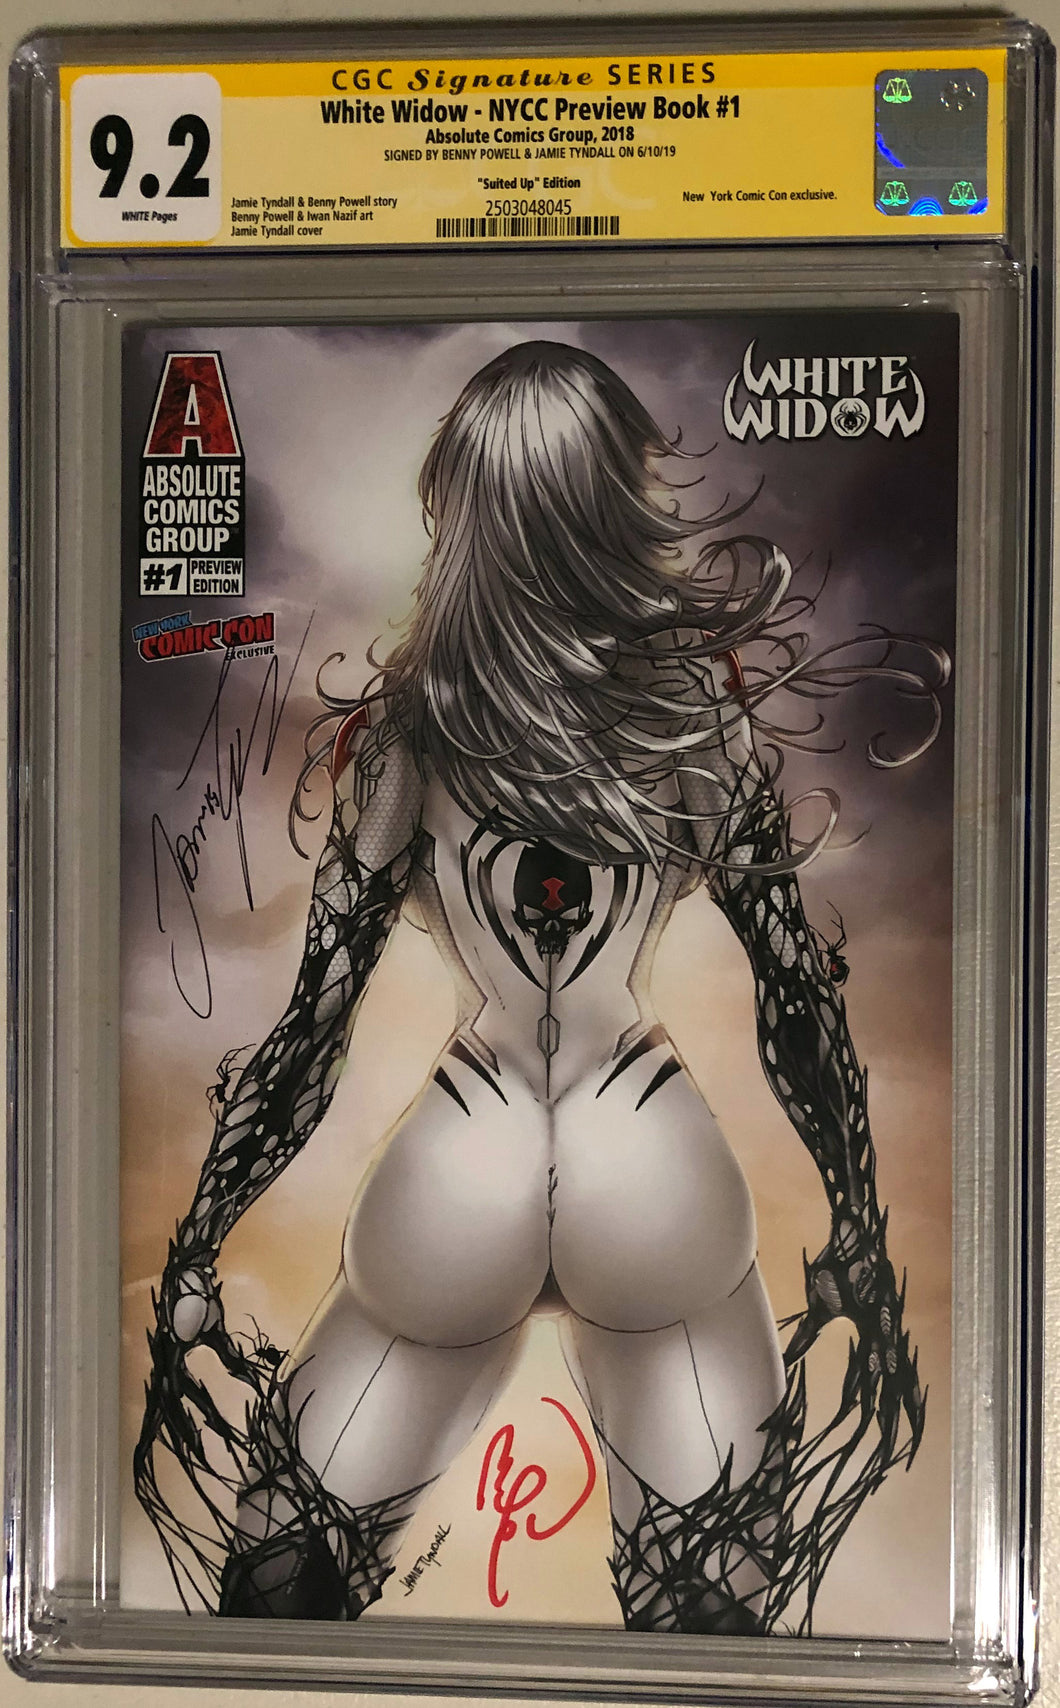 White Widow NYCC Preview #1e - Suited Up - CGC 9.2 Yellow Label